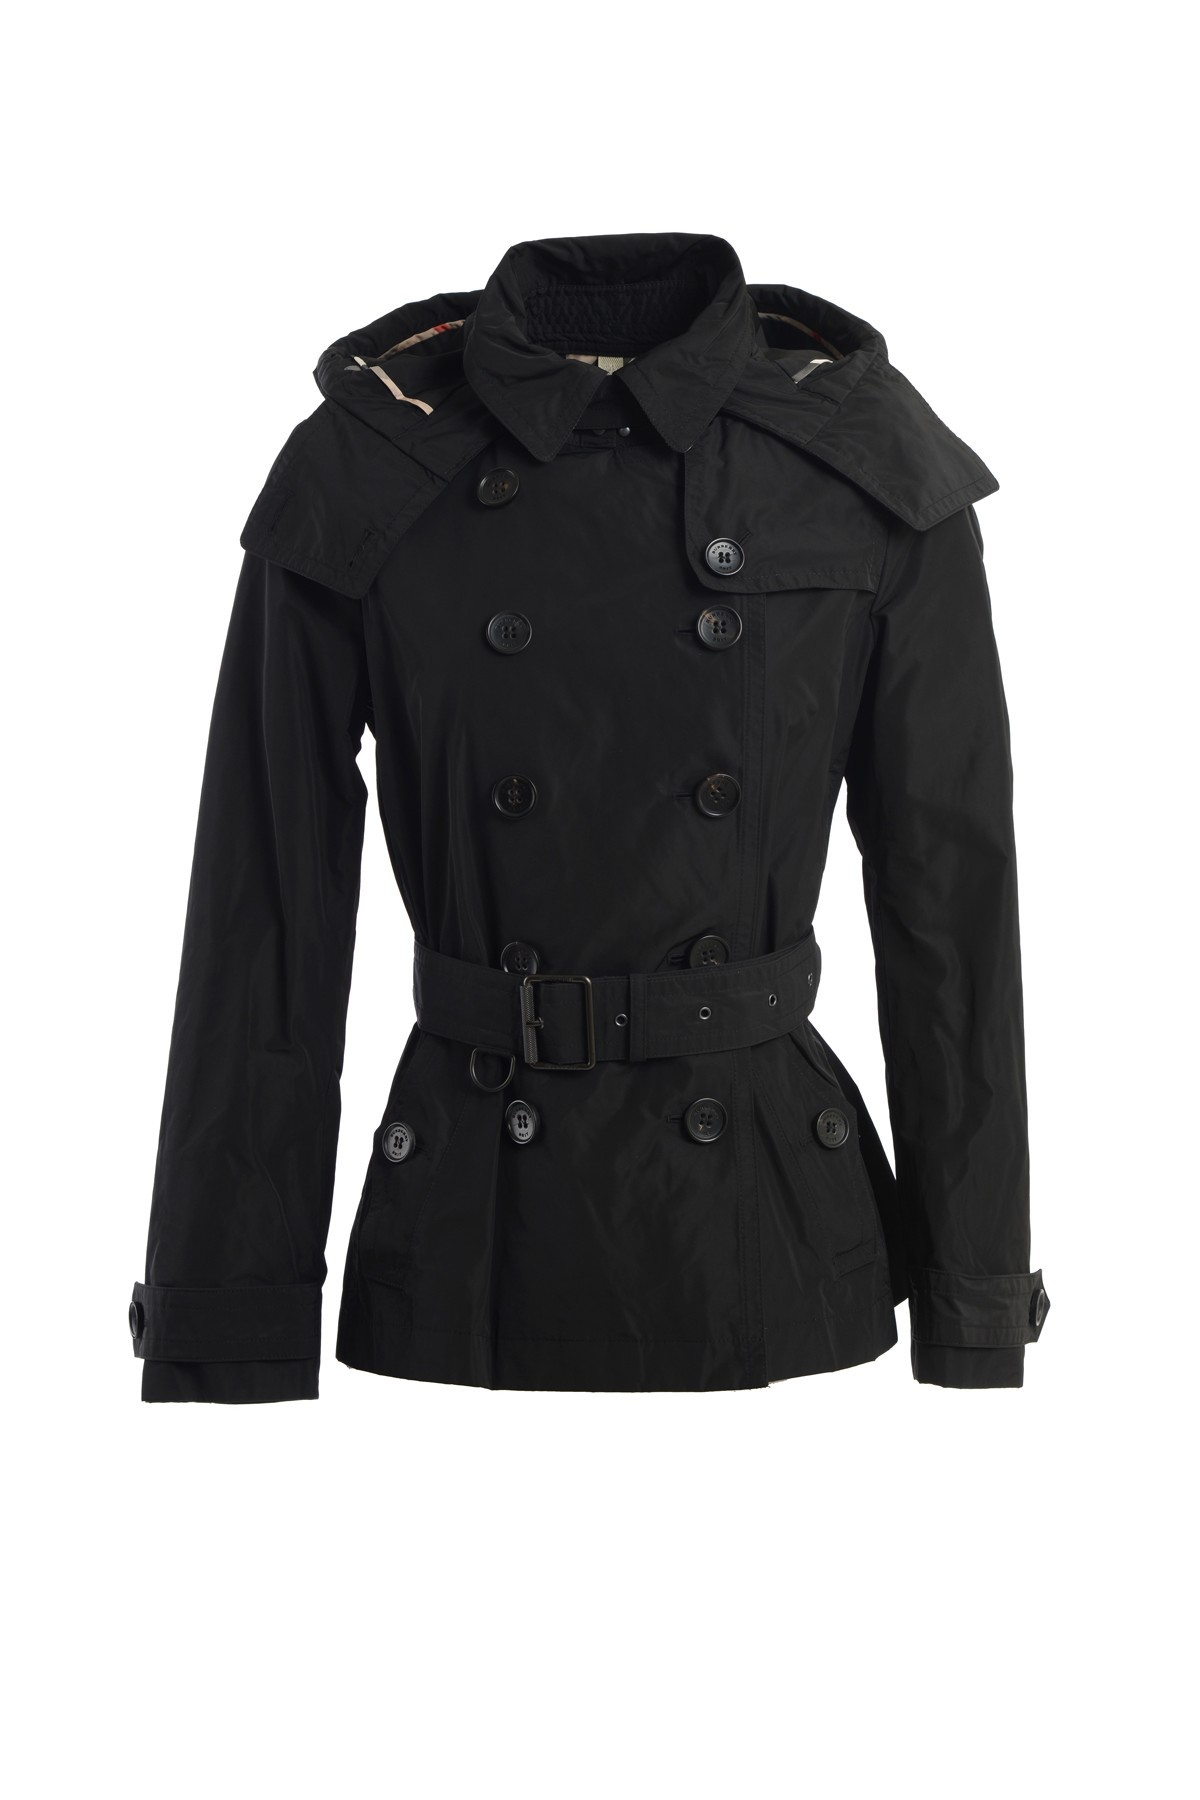 black trench coat with hood - photo #49